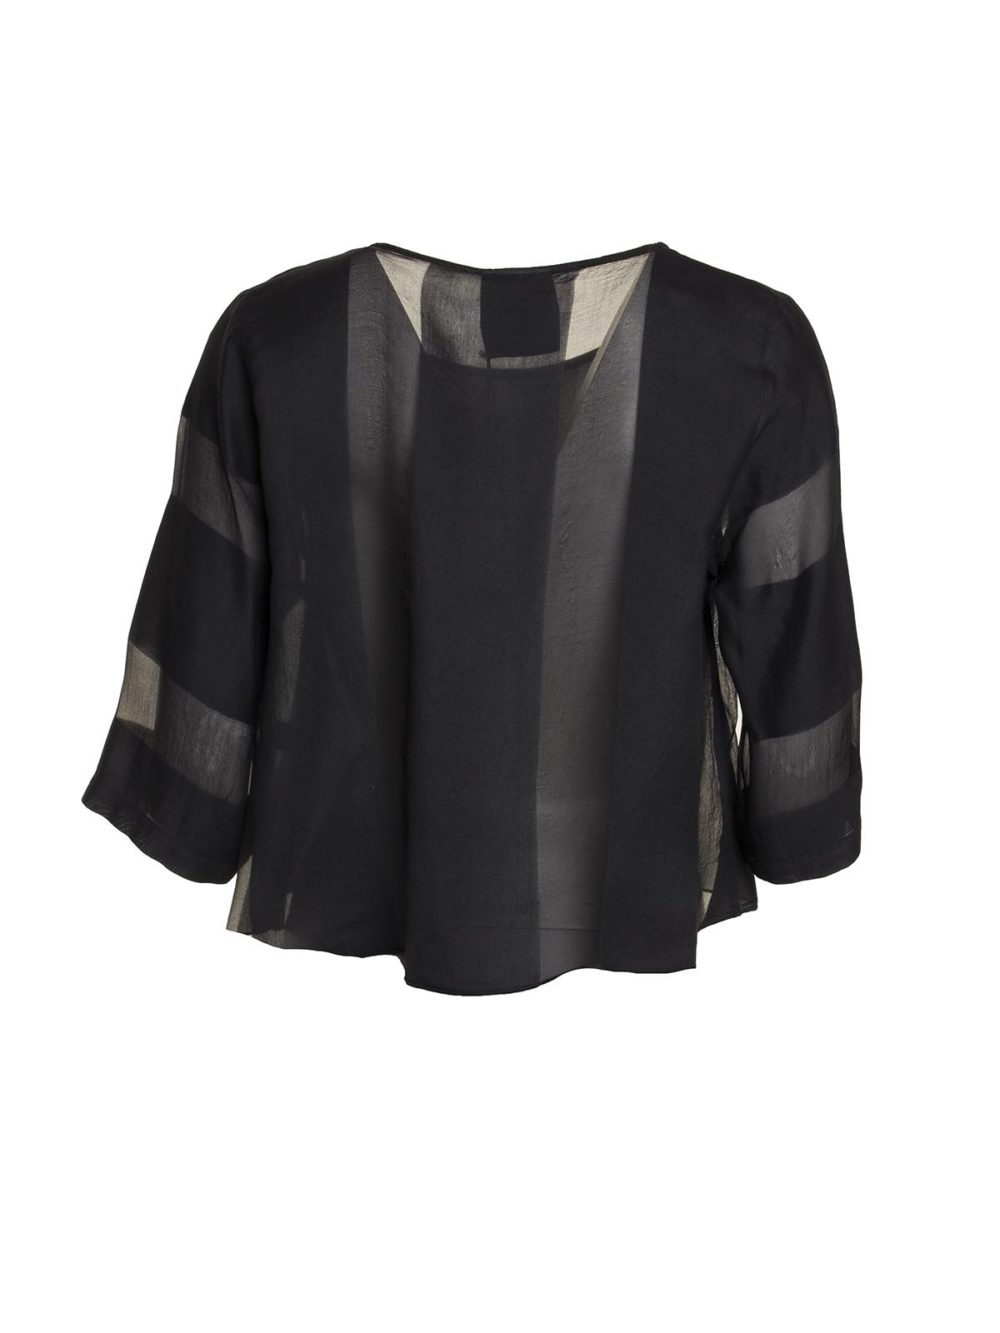 Sheer Wide Stripe Over Top Out of Xile Katie Kerr Women's Clothing